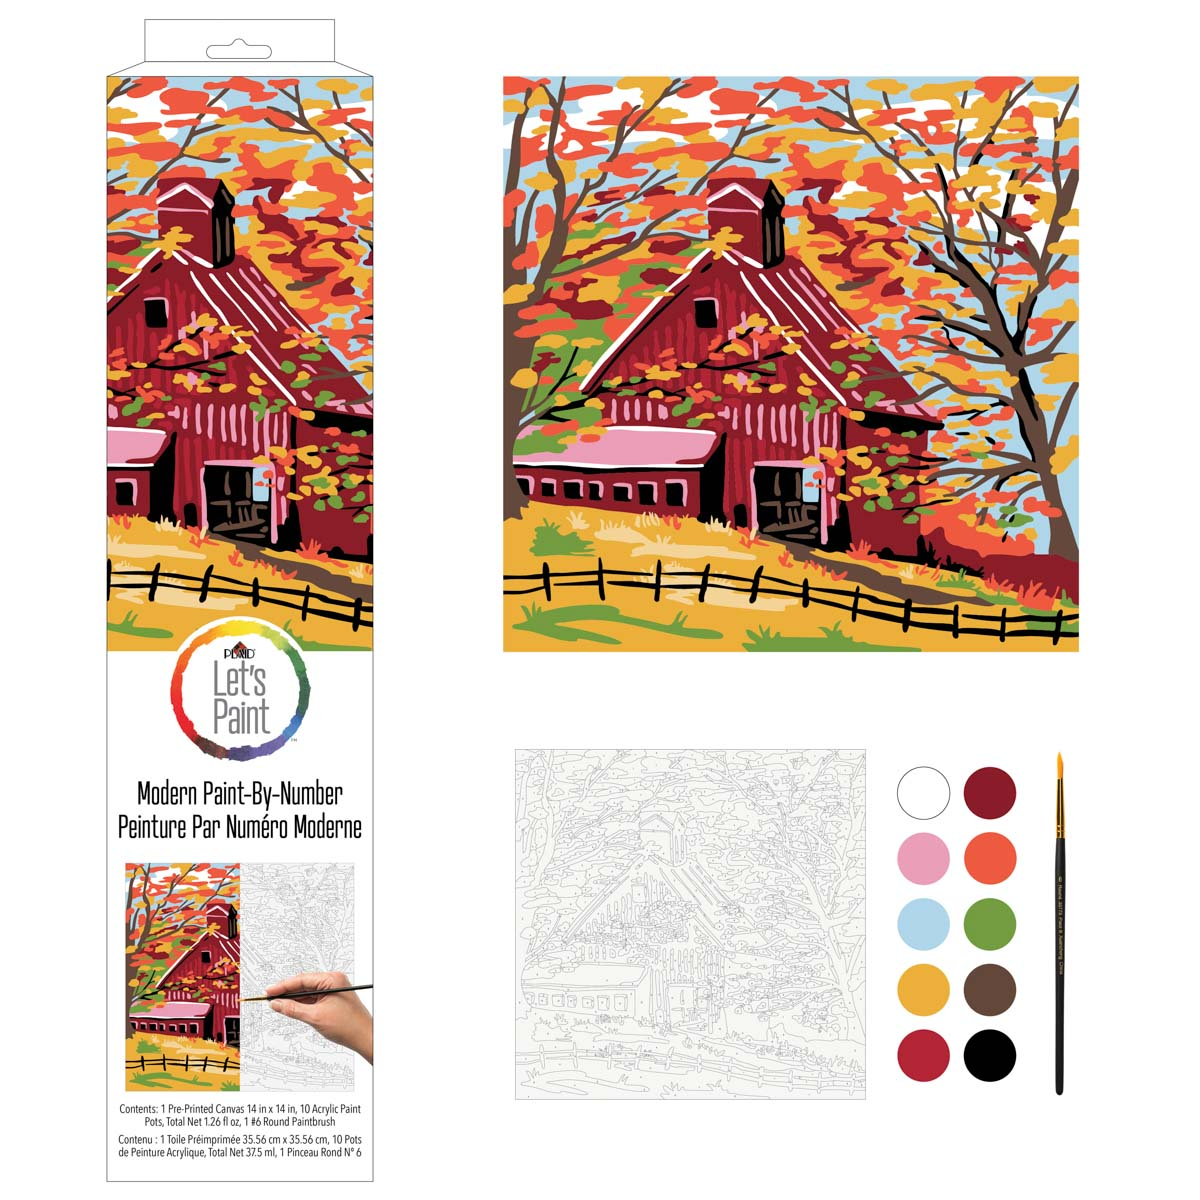 Plaid ® Let's Paint™ Modern Paint-by-Number - Fall Barn - 17916